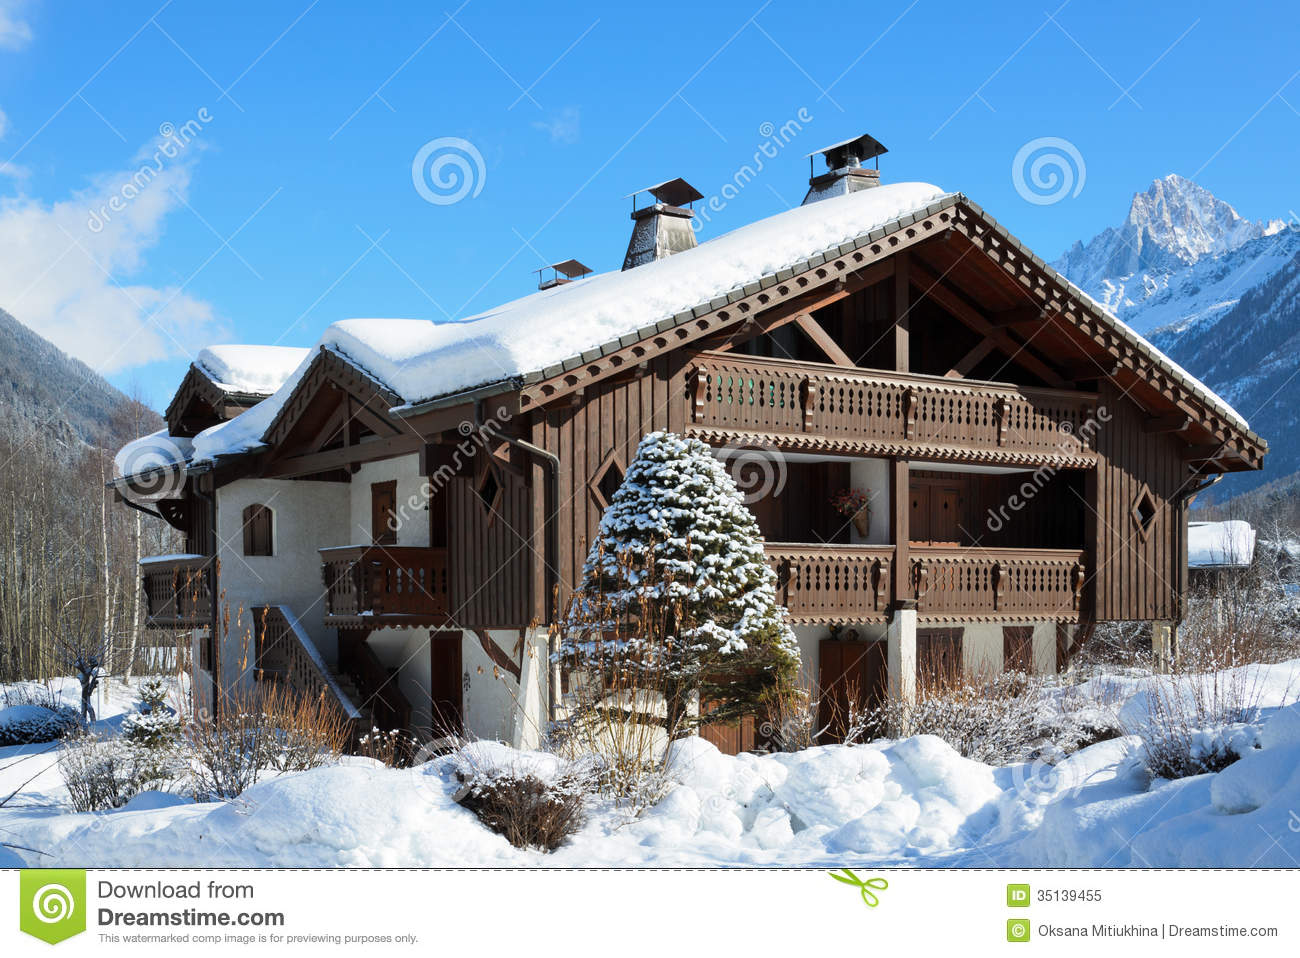 Alpine Chalet In The Winter Mountains Royalty Free Stock